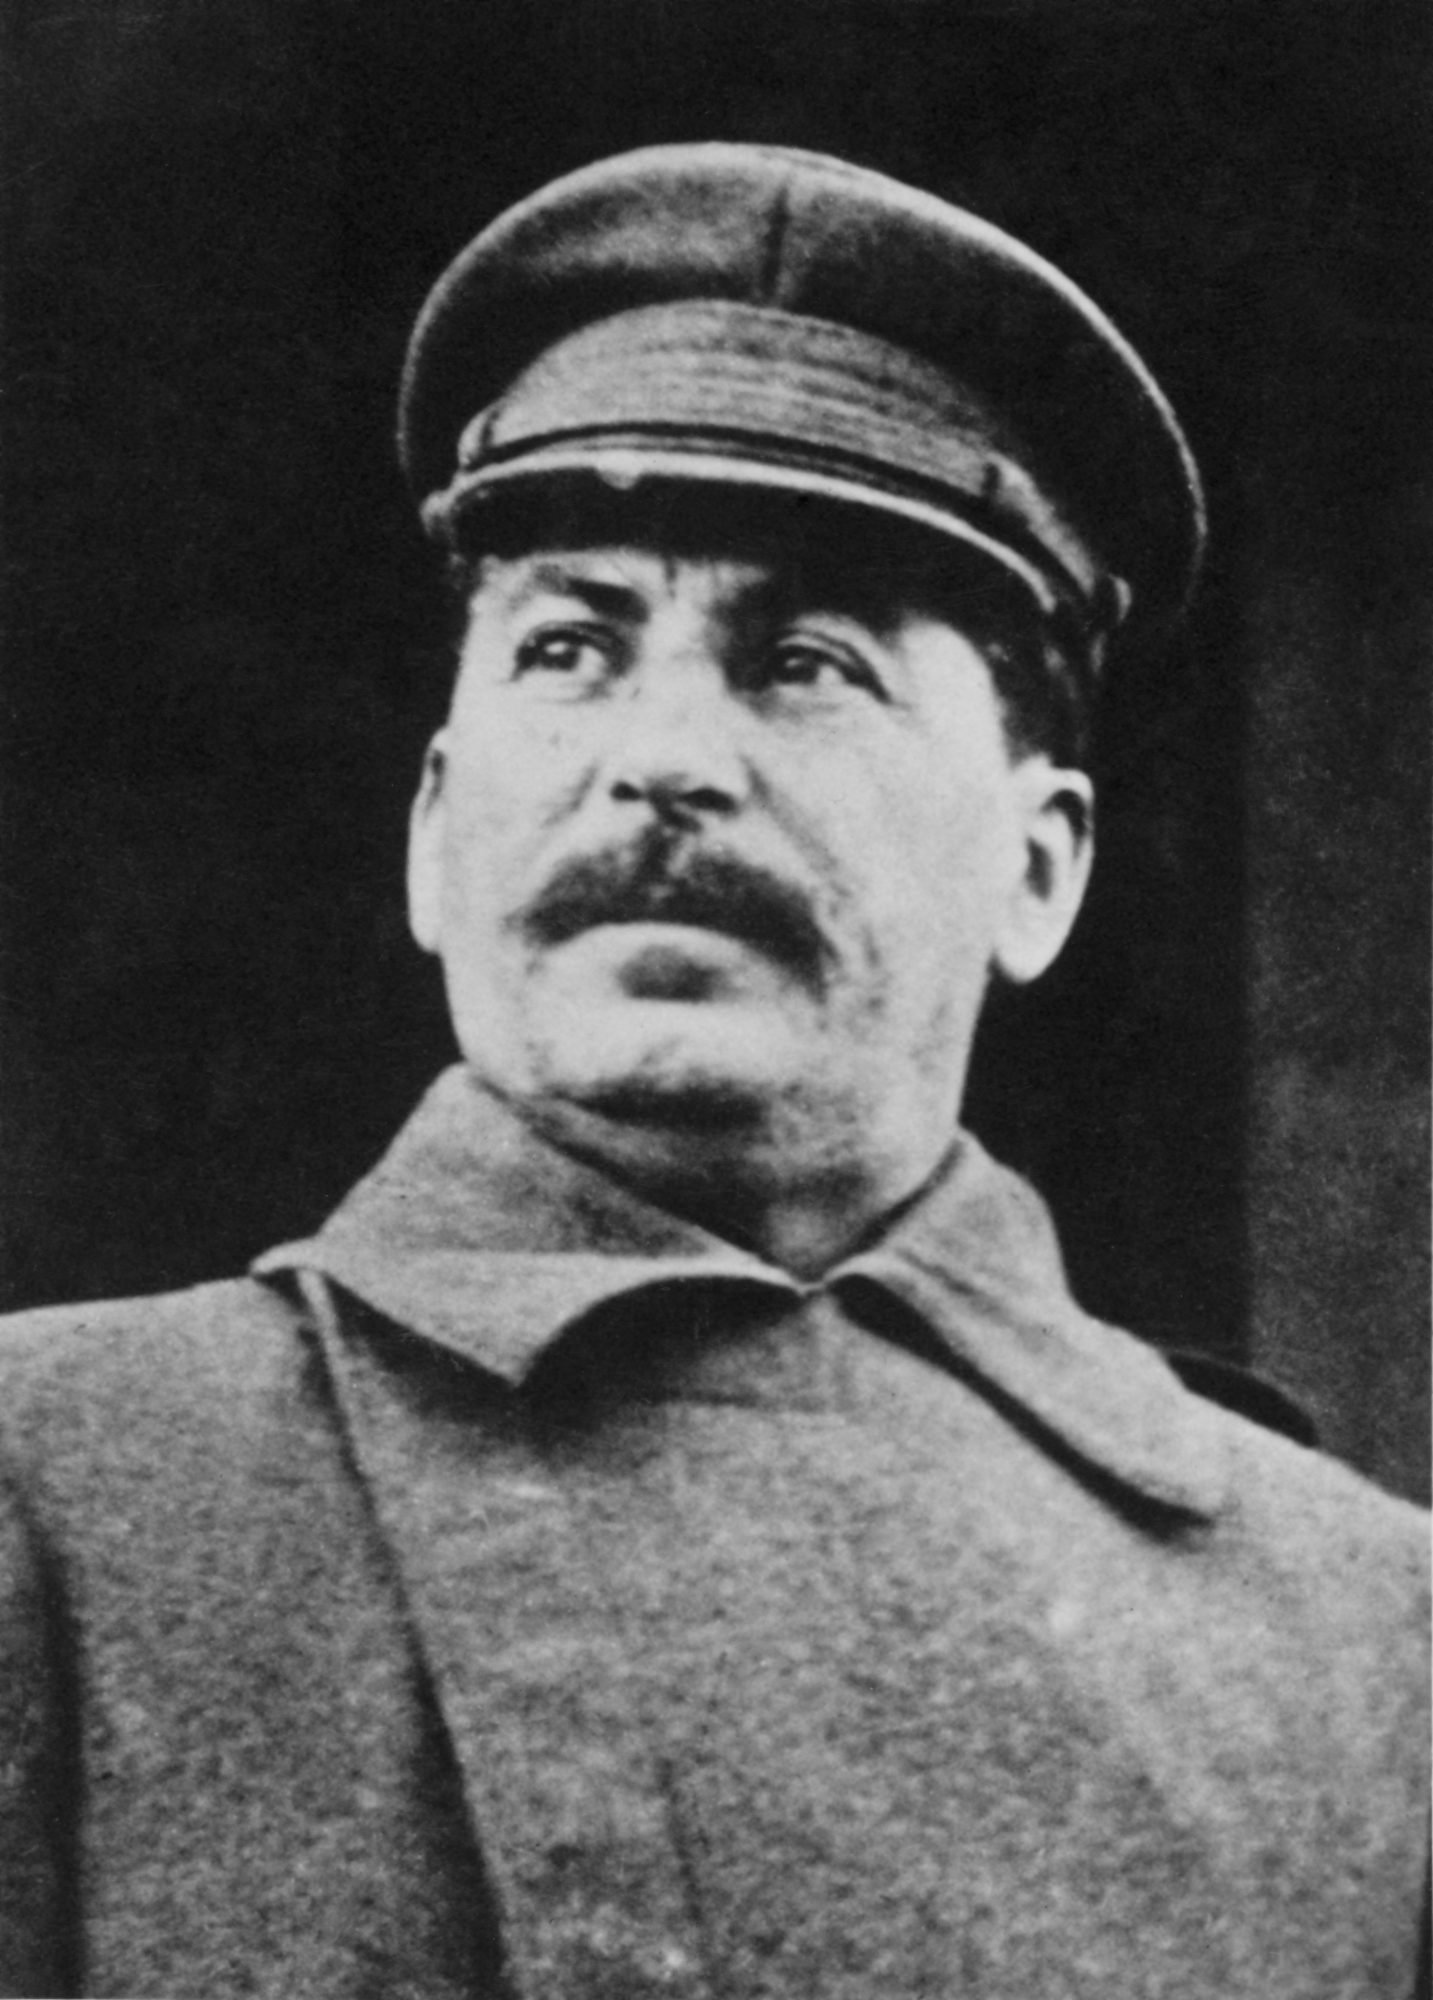 Joseph Stalin (1879 - 1953), General Secretary of the Communist Party of the Soviet Union, circa 1930. (Photo by Keystone/Hulton Archive/Getty Images)